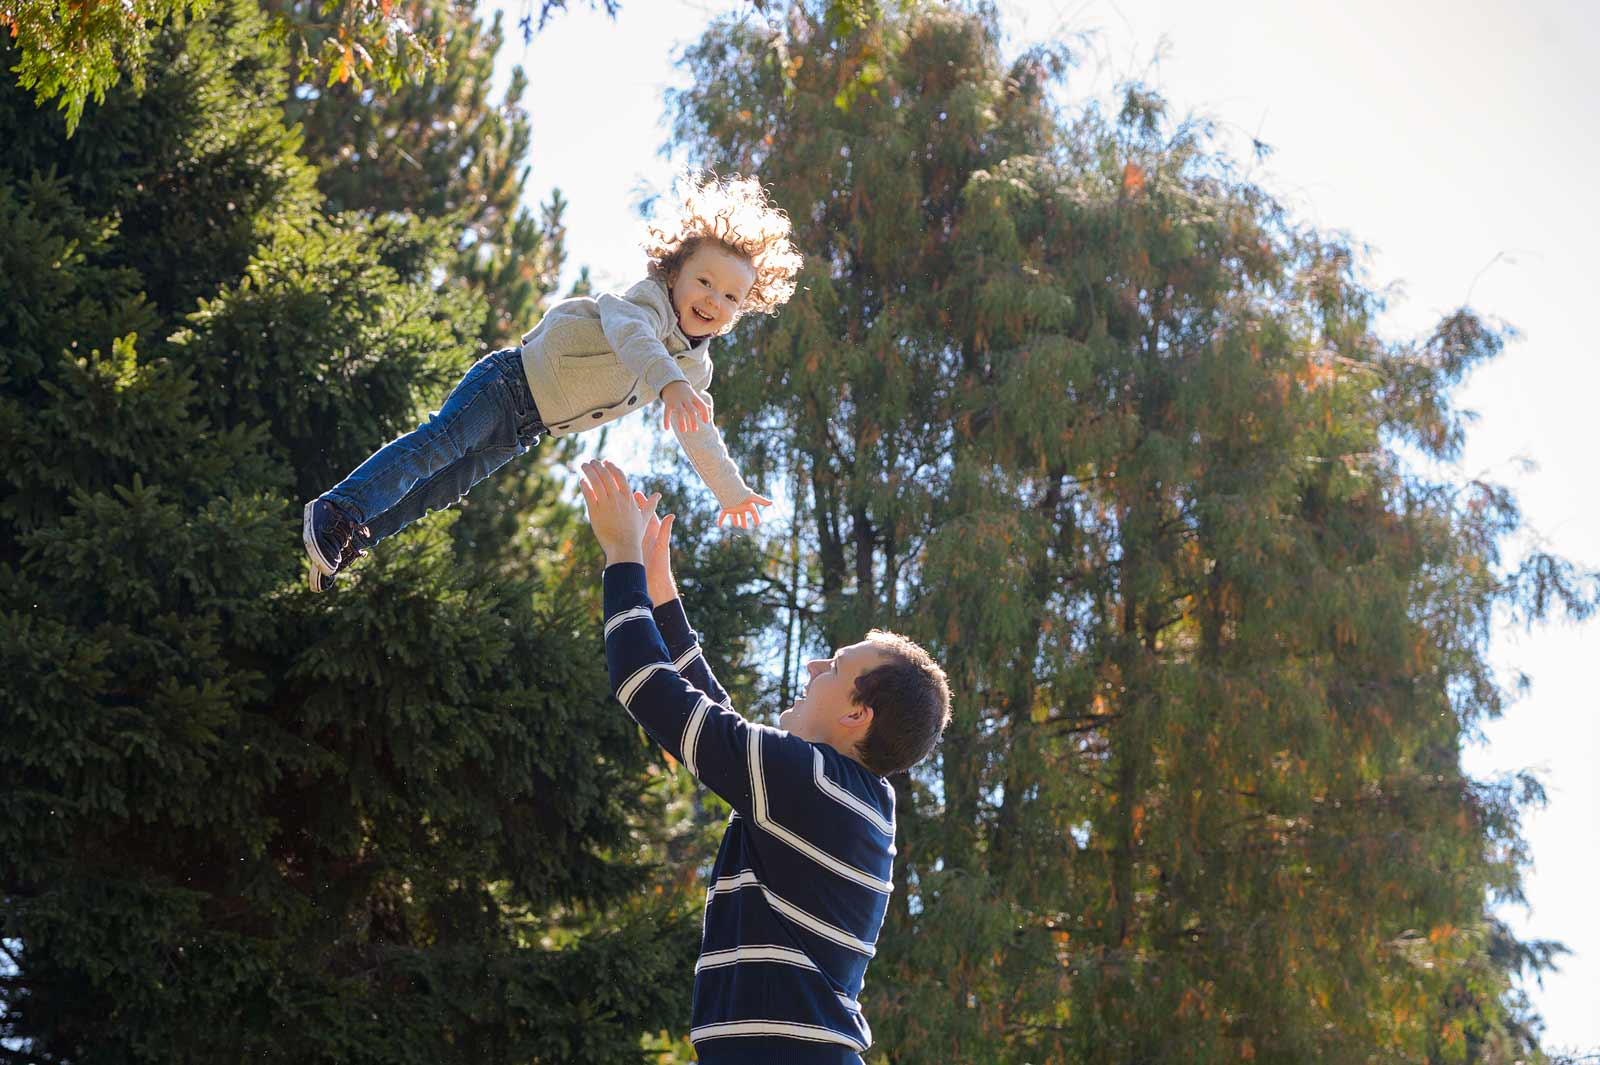 Kid laughing flying through the air into Dad's arms at the Ornamental Gardens